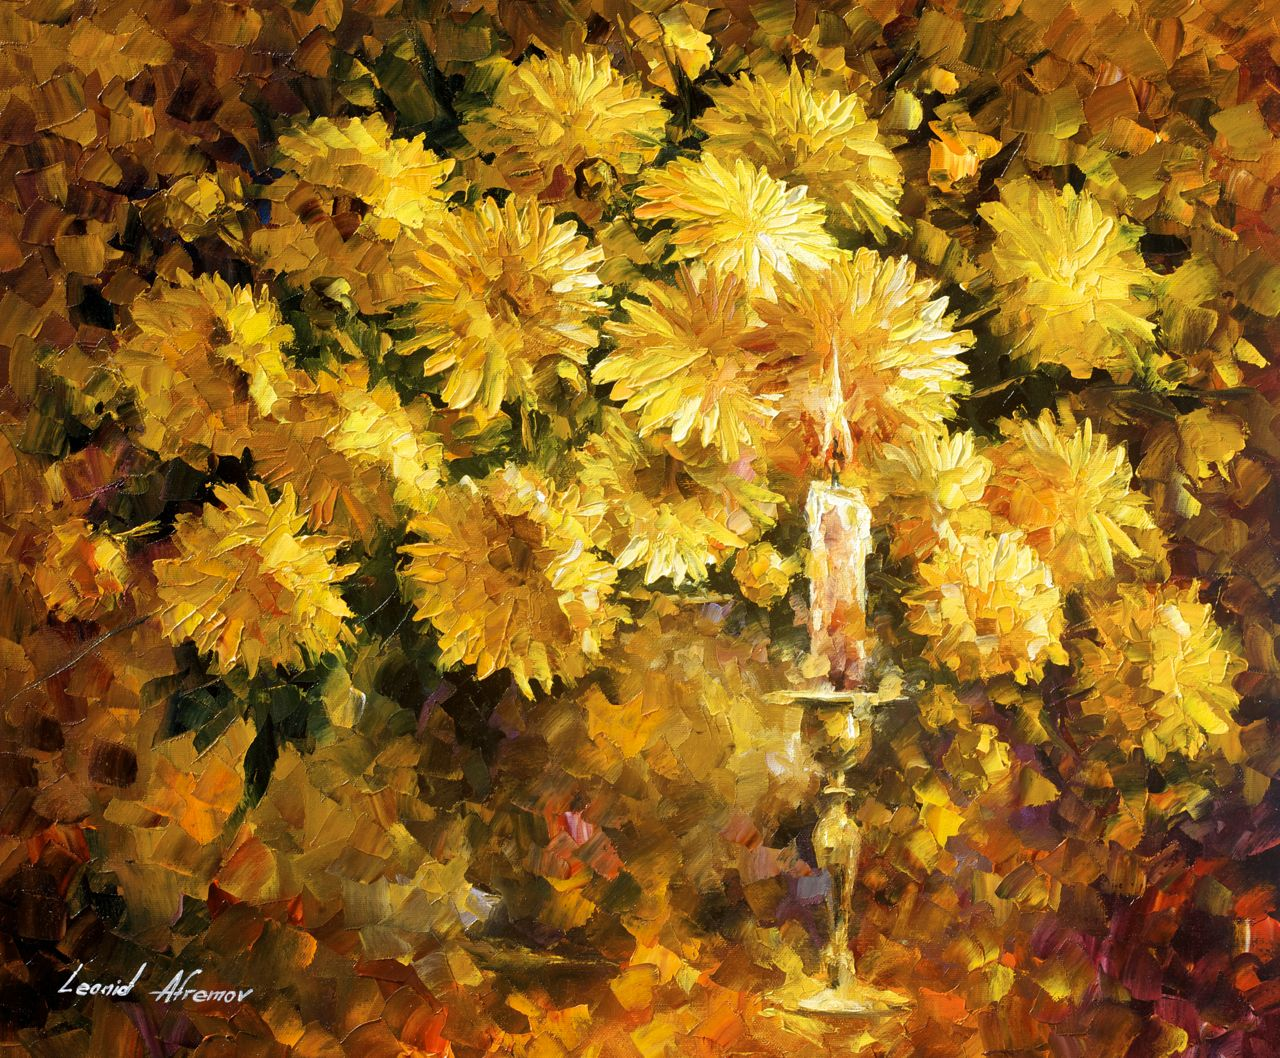 "CANDLE OF REASON - Original Oil Painting - Wall Art Canvas By Leonid Afremov - 24""X20""  (60cm x 50cm)"